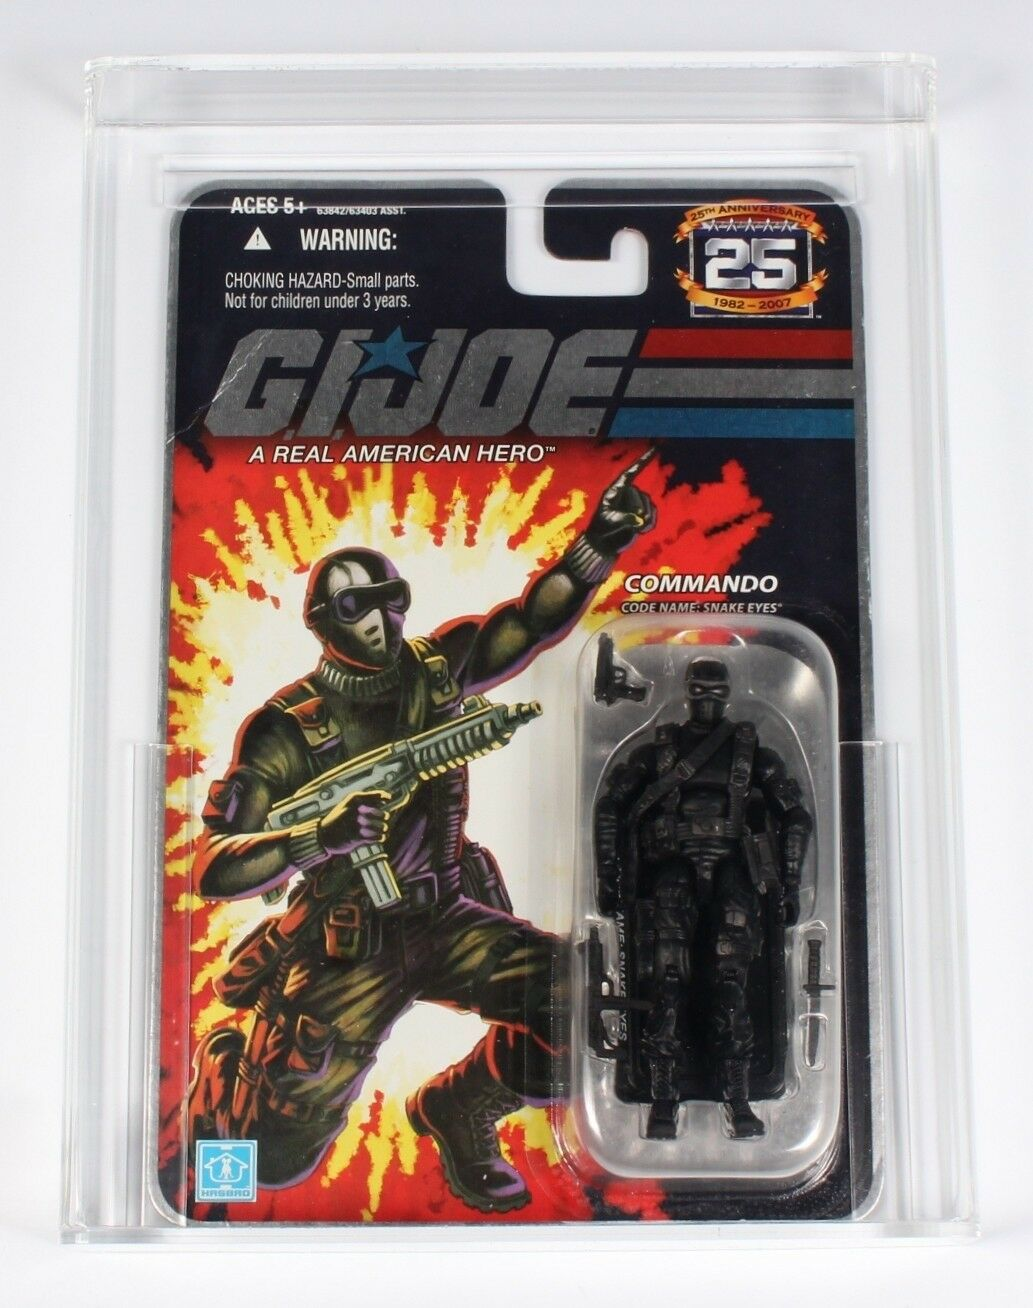 2008 Hasbro G.I. Joe Snake Eyes Action Figure 25th Anniversary Nuovo Graded 80+